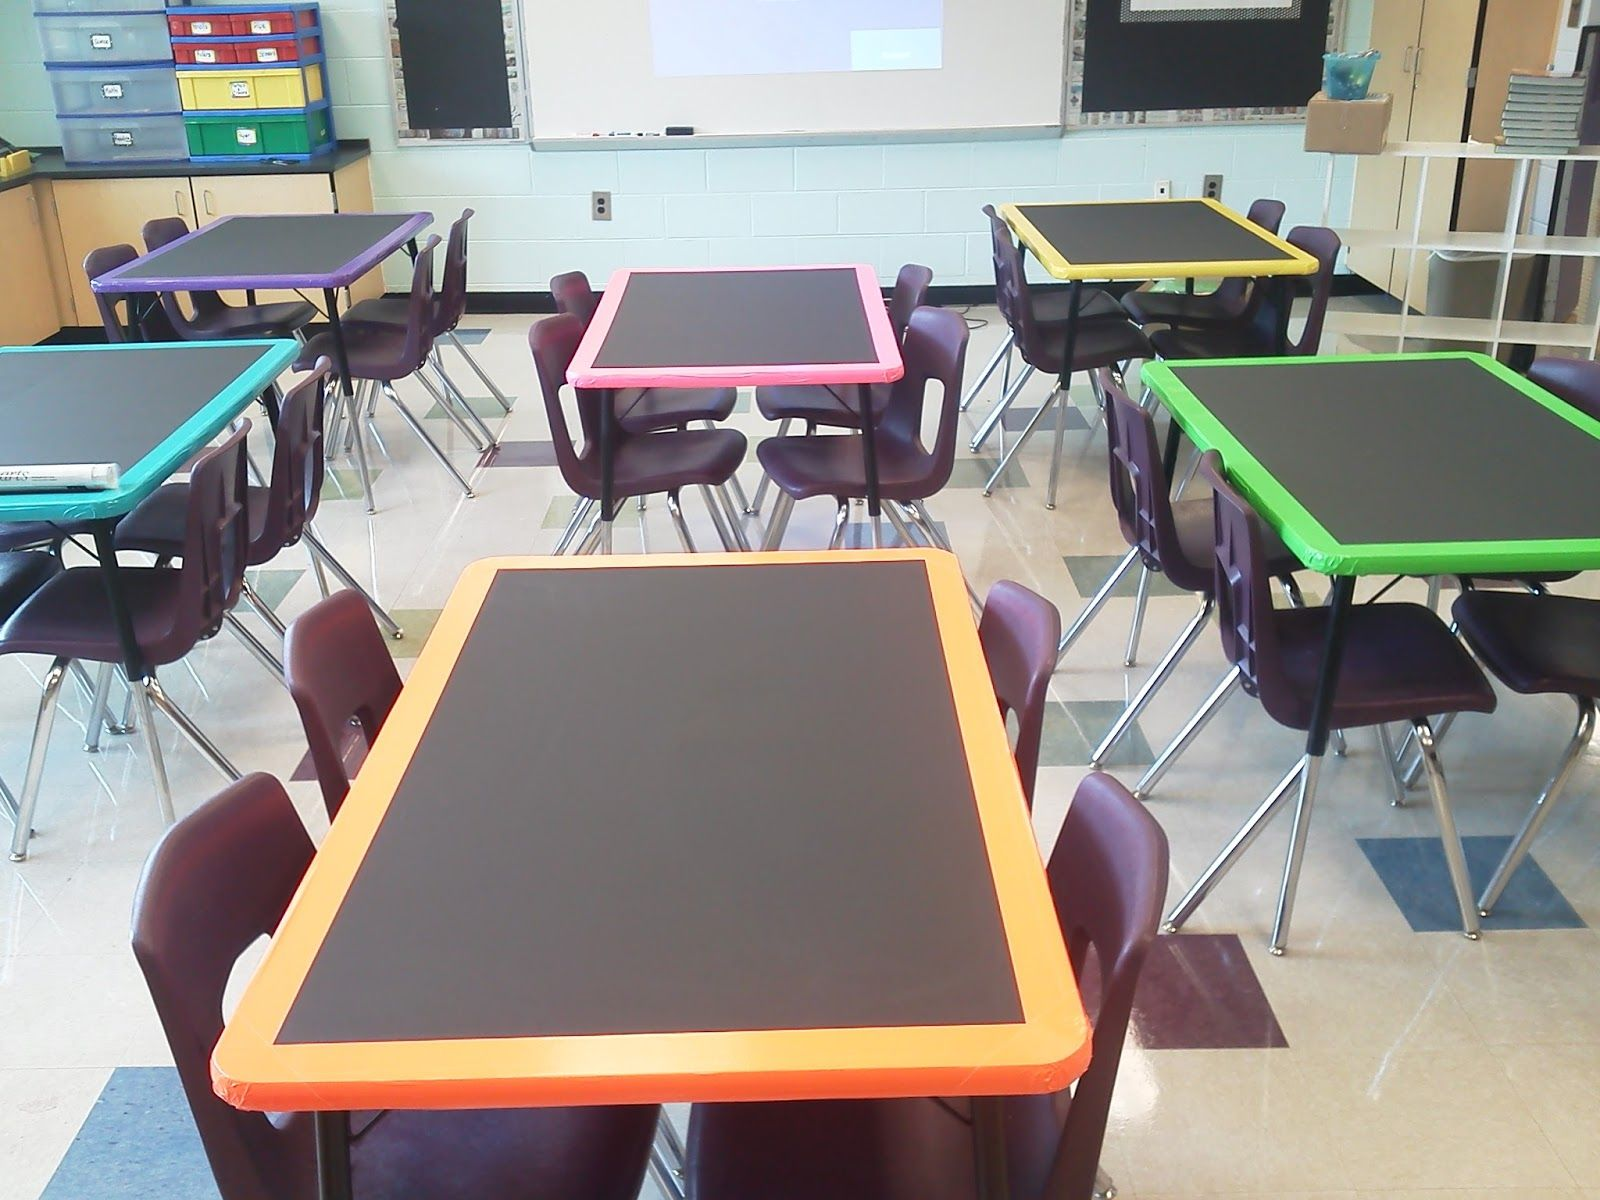 Delicieux Chalkboard Tables    Paint The Tops Of Your Tables With Chalkboard Paint  And Then Use Colored Duct Tape Around The Edge Of The Tables.